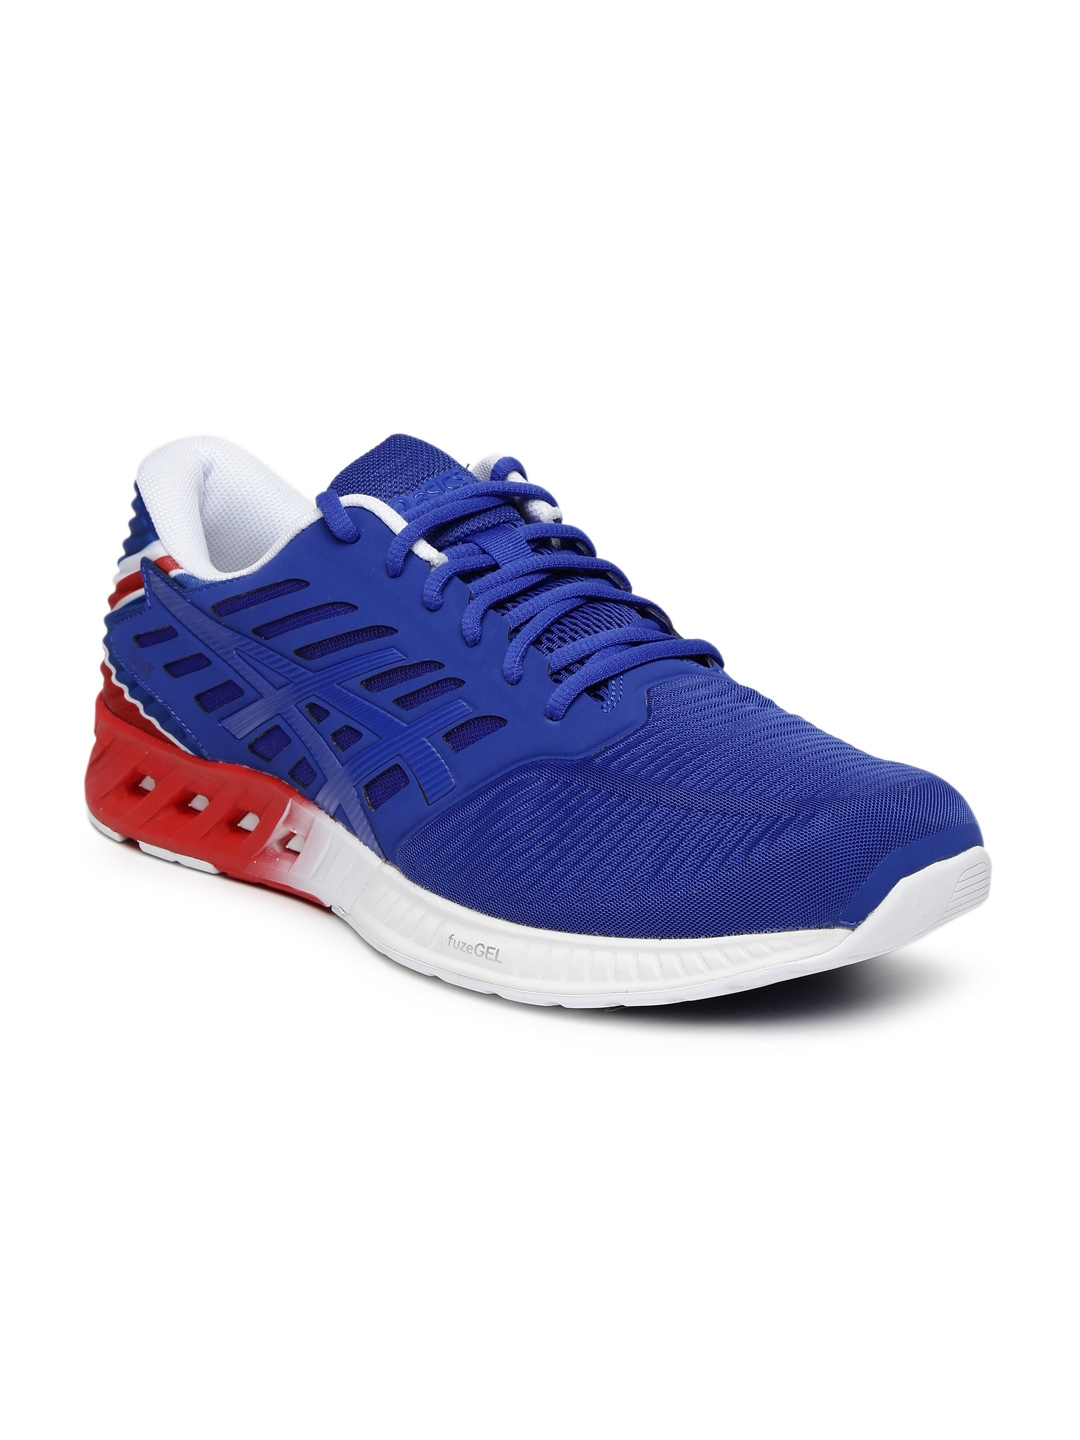 2401b3e0dfe1 Buy ASICS Unisex Blue   Red FuzeX Country Pack Running Shoes ...